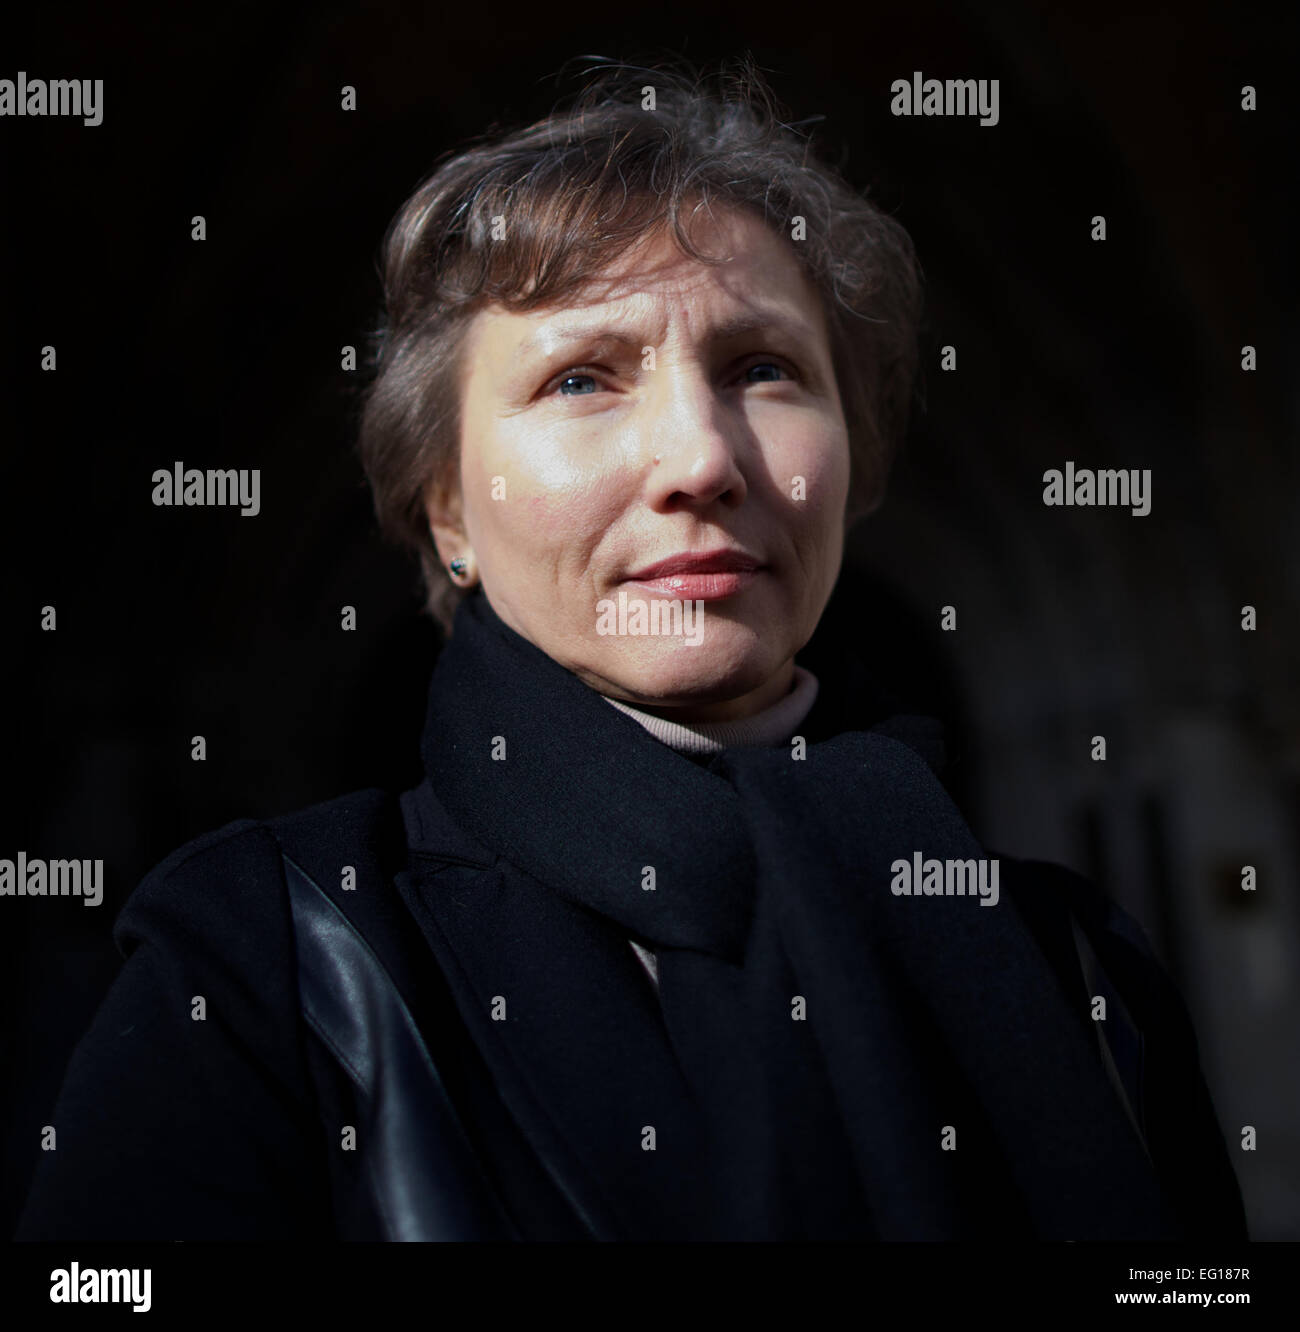 UNITED KINGDOM, London : Russian widow of the former KGB spy Alexander Litvinenko, Marina (R) is photographed leaving - Stock Image